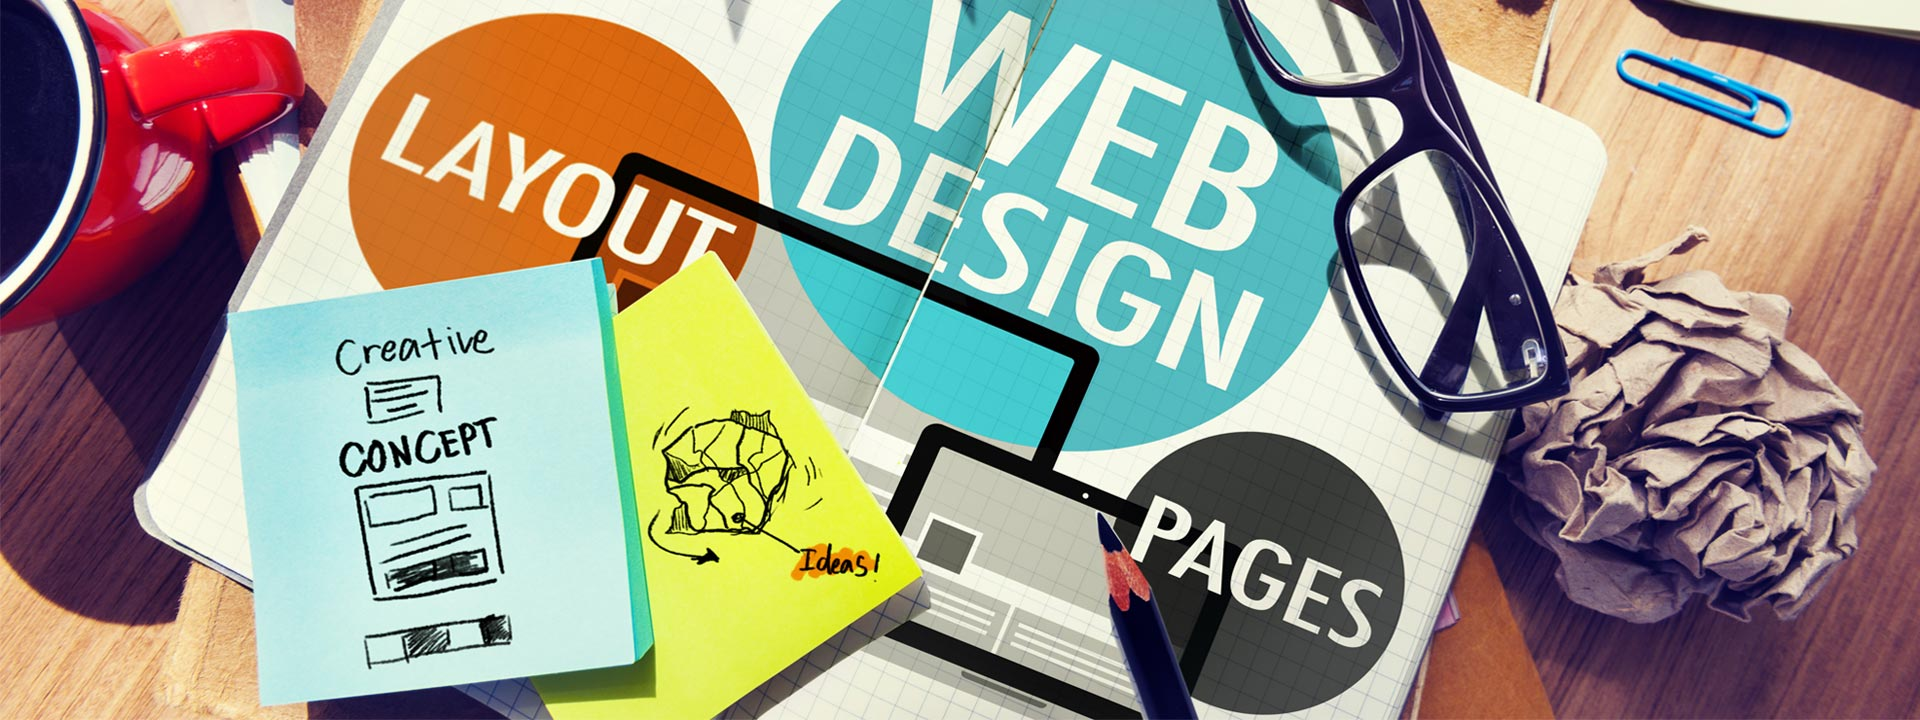 10 Awesome New Design Blogs To Look Out For